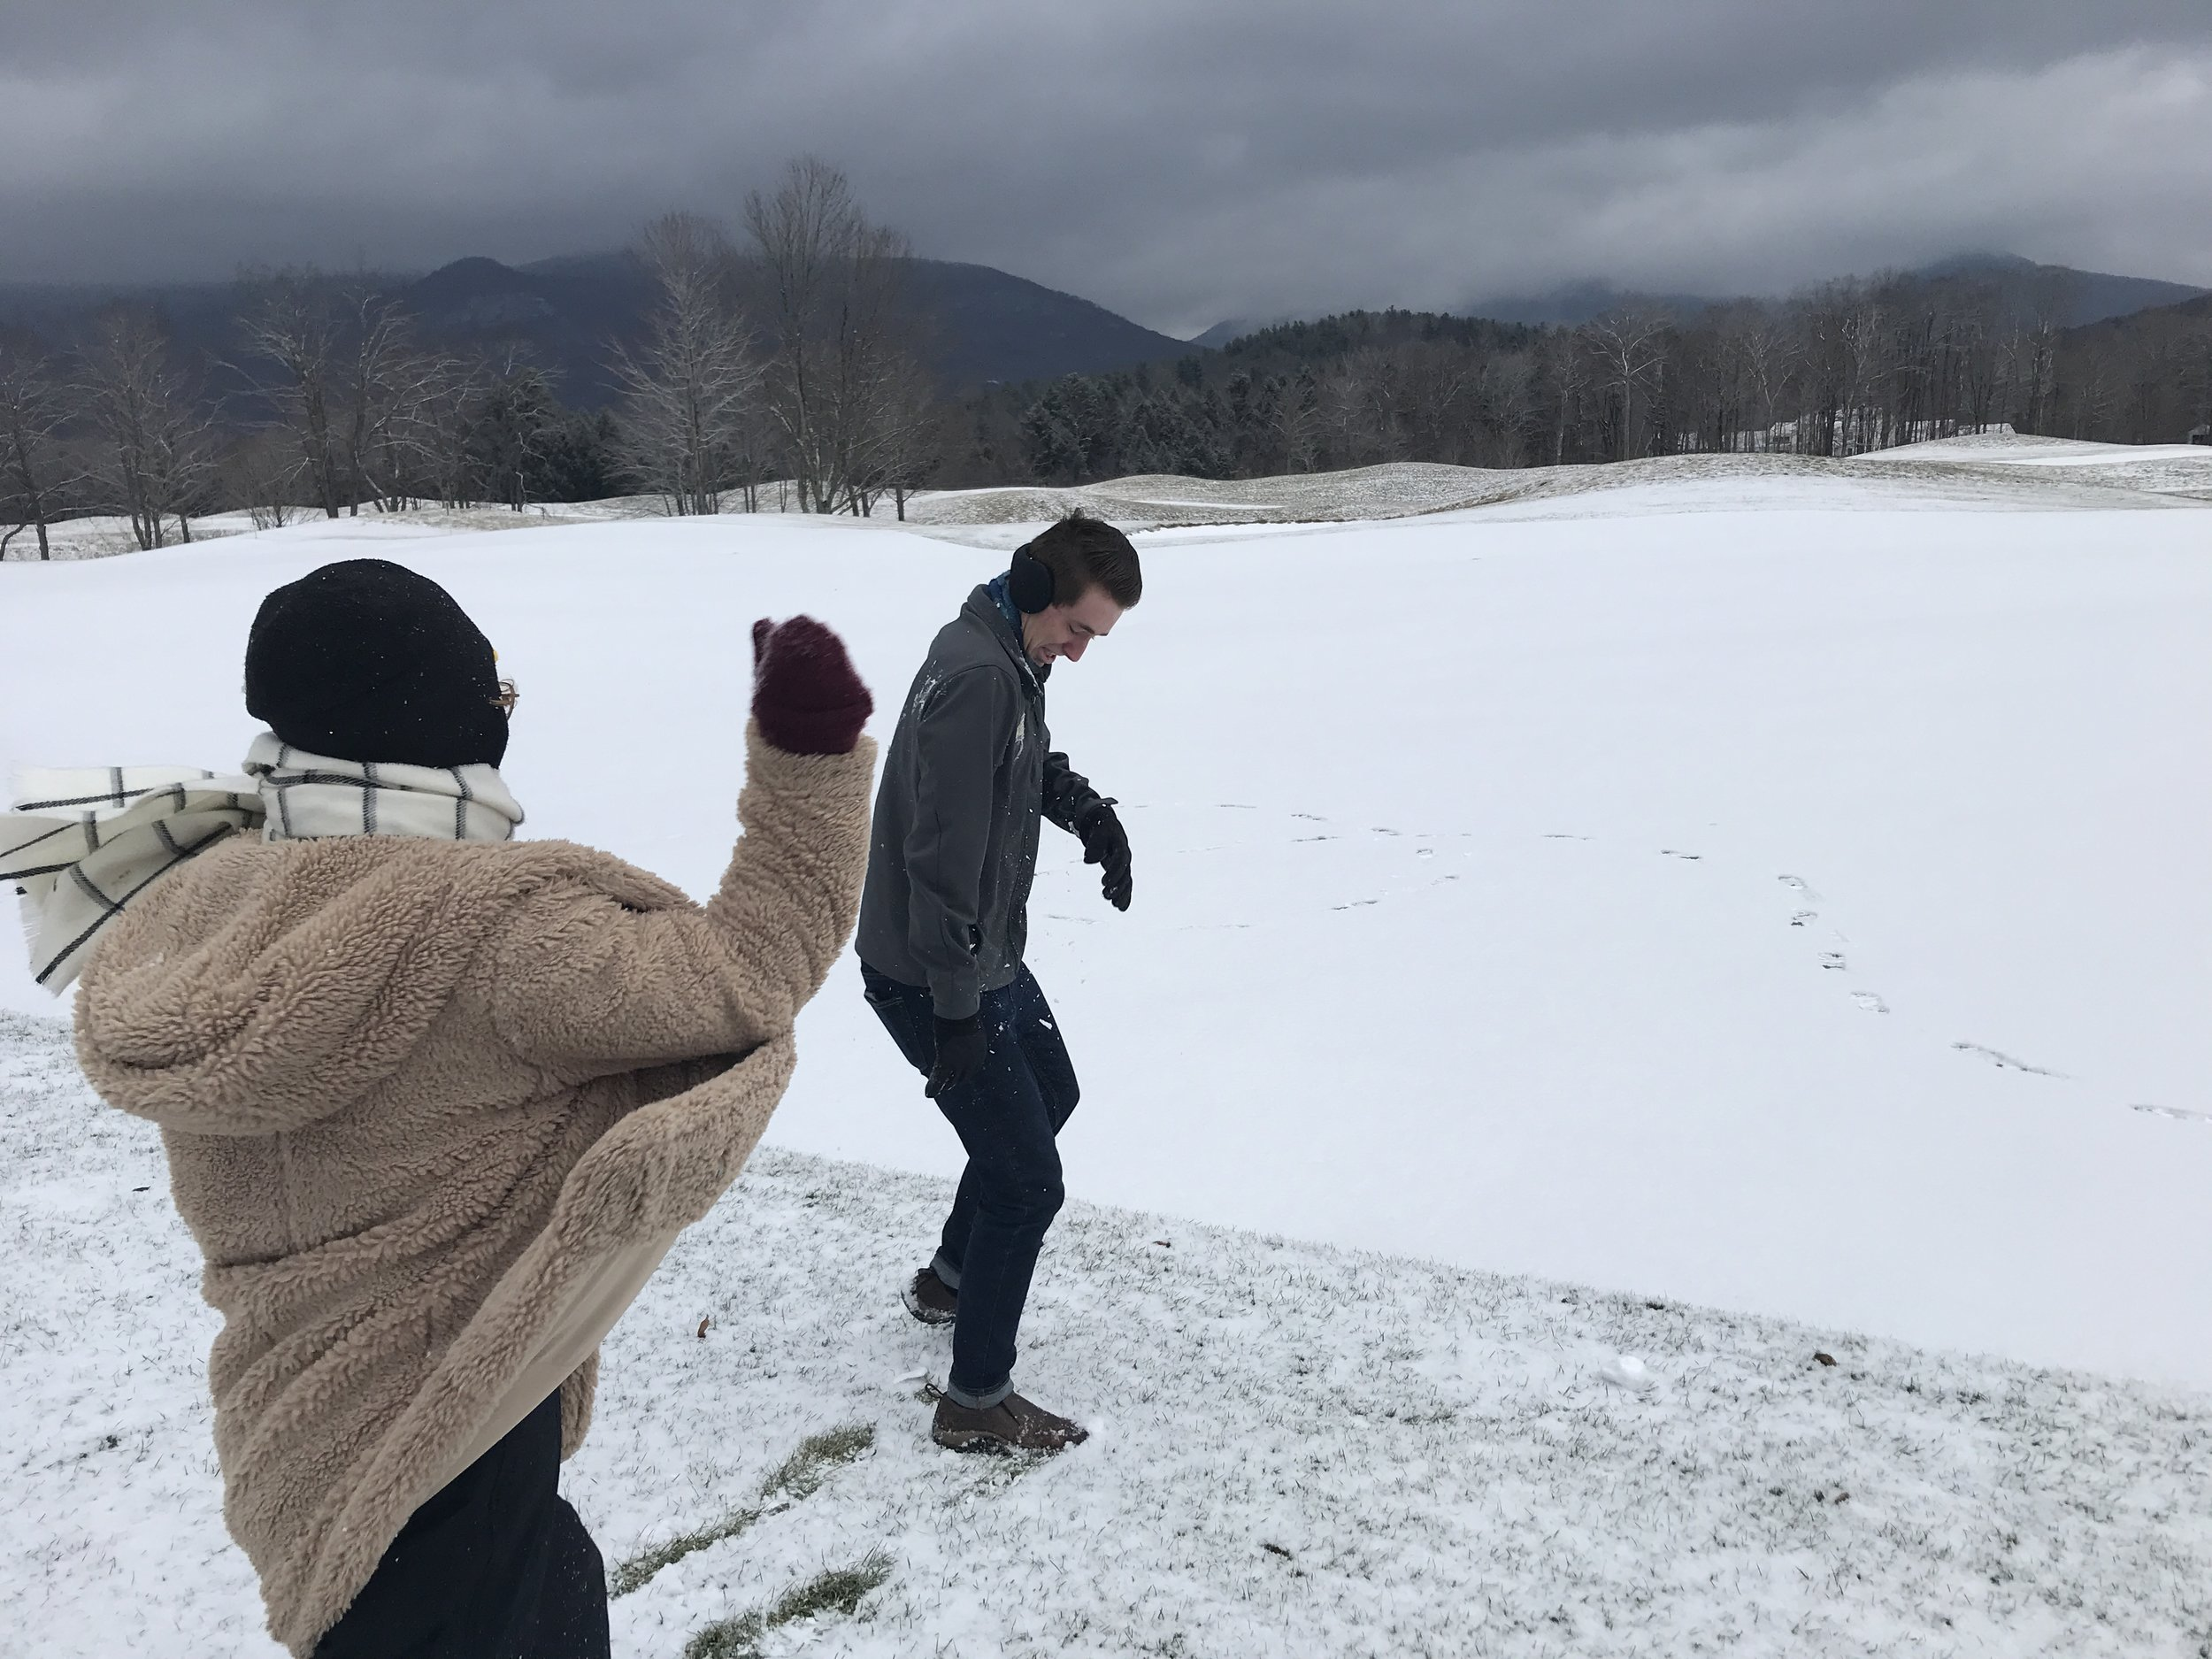 Sibling snowball fight. Ahhh.